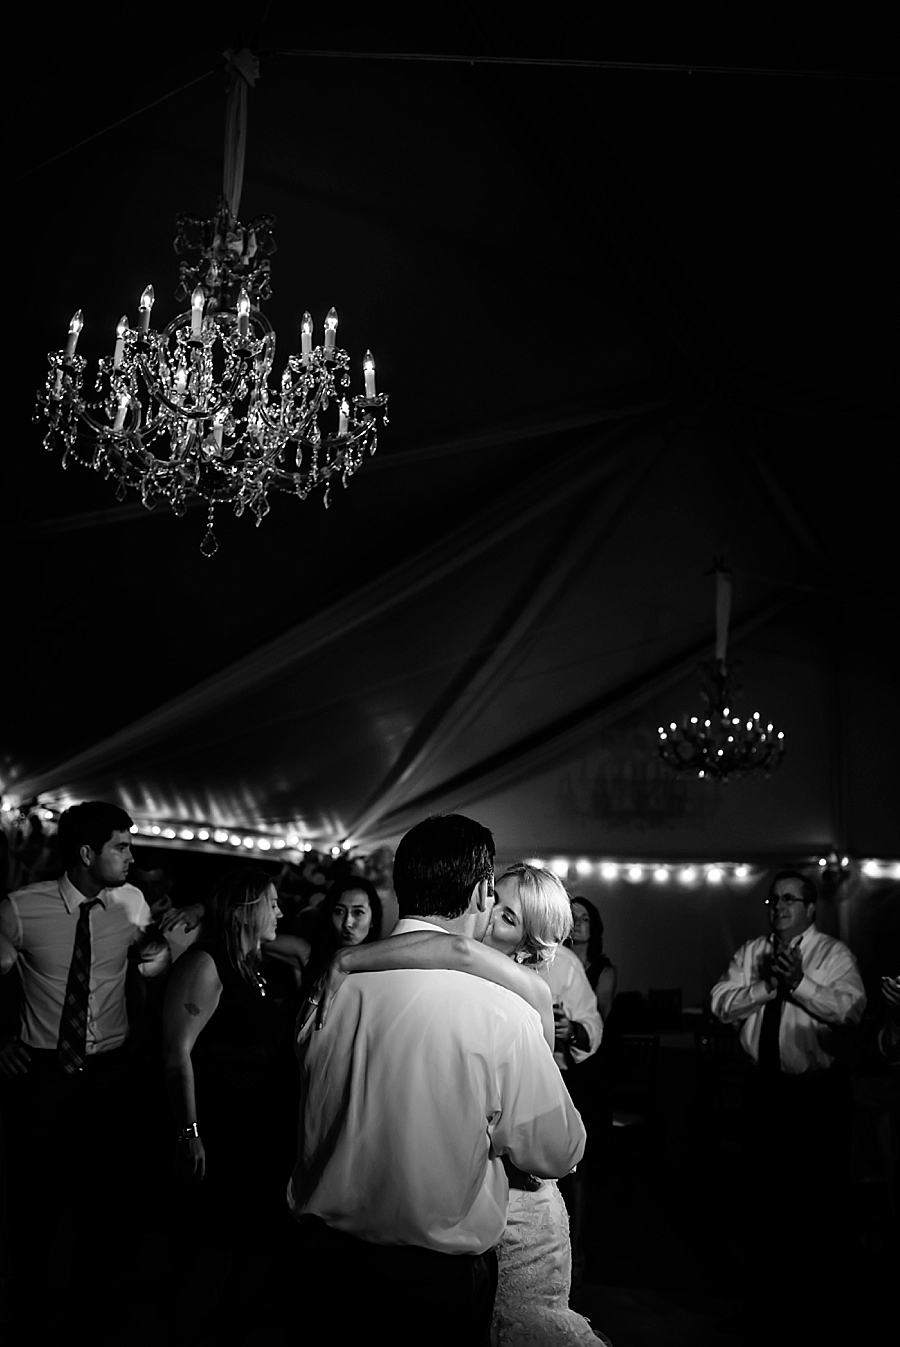 merrimonwynne_wedding_0070.jpg